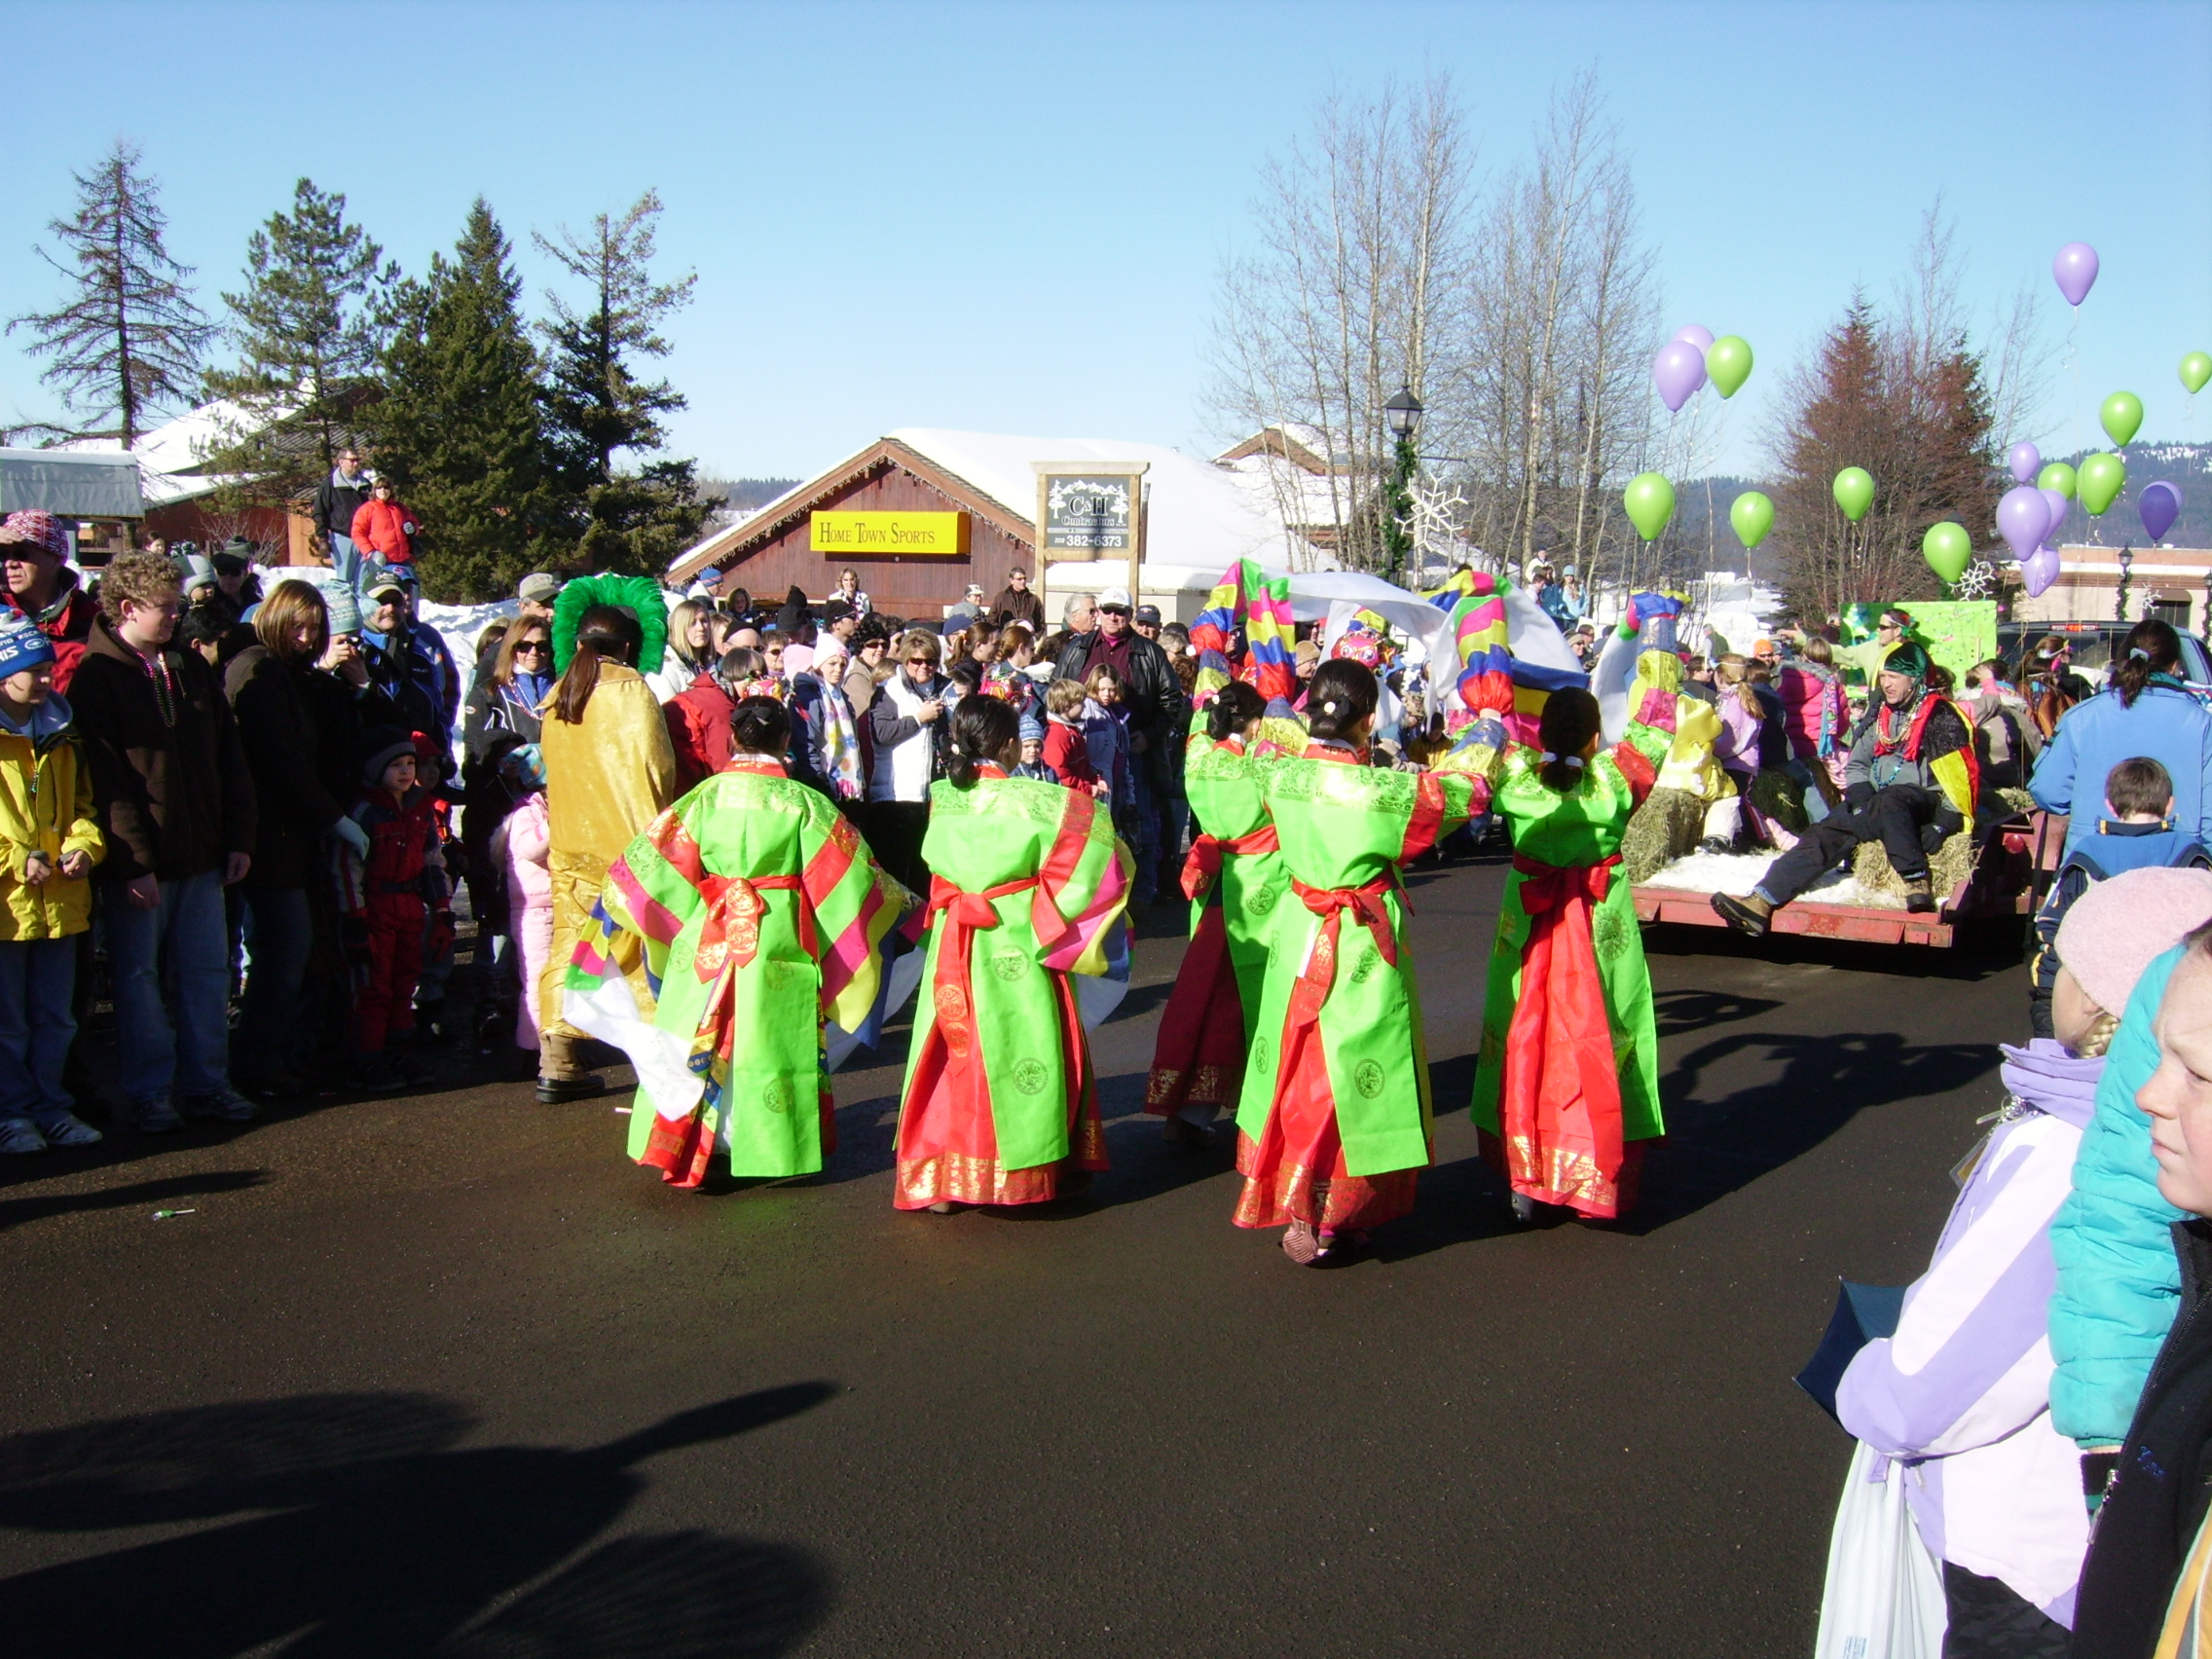 McCall Winter Carnival photo by Brent via Flickr Creative Commons